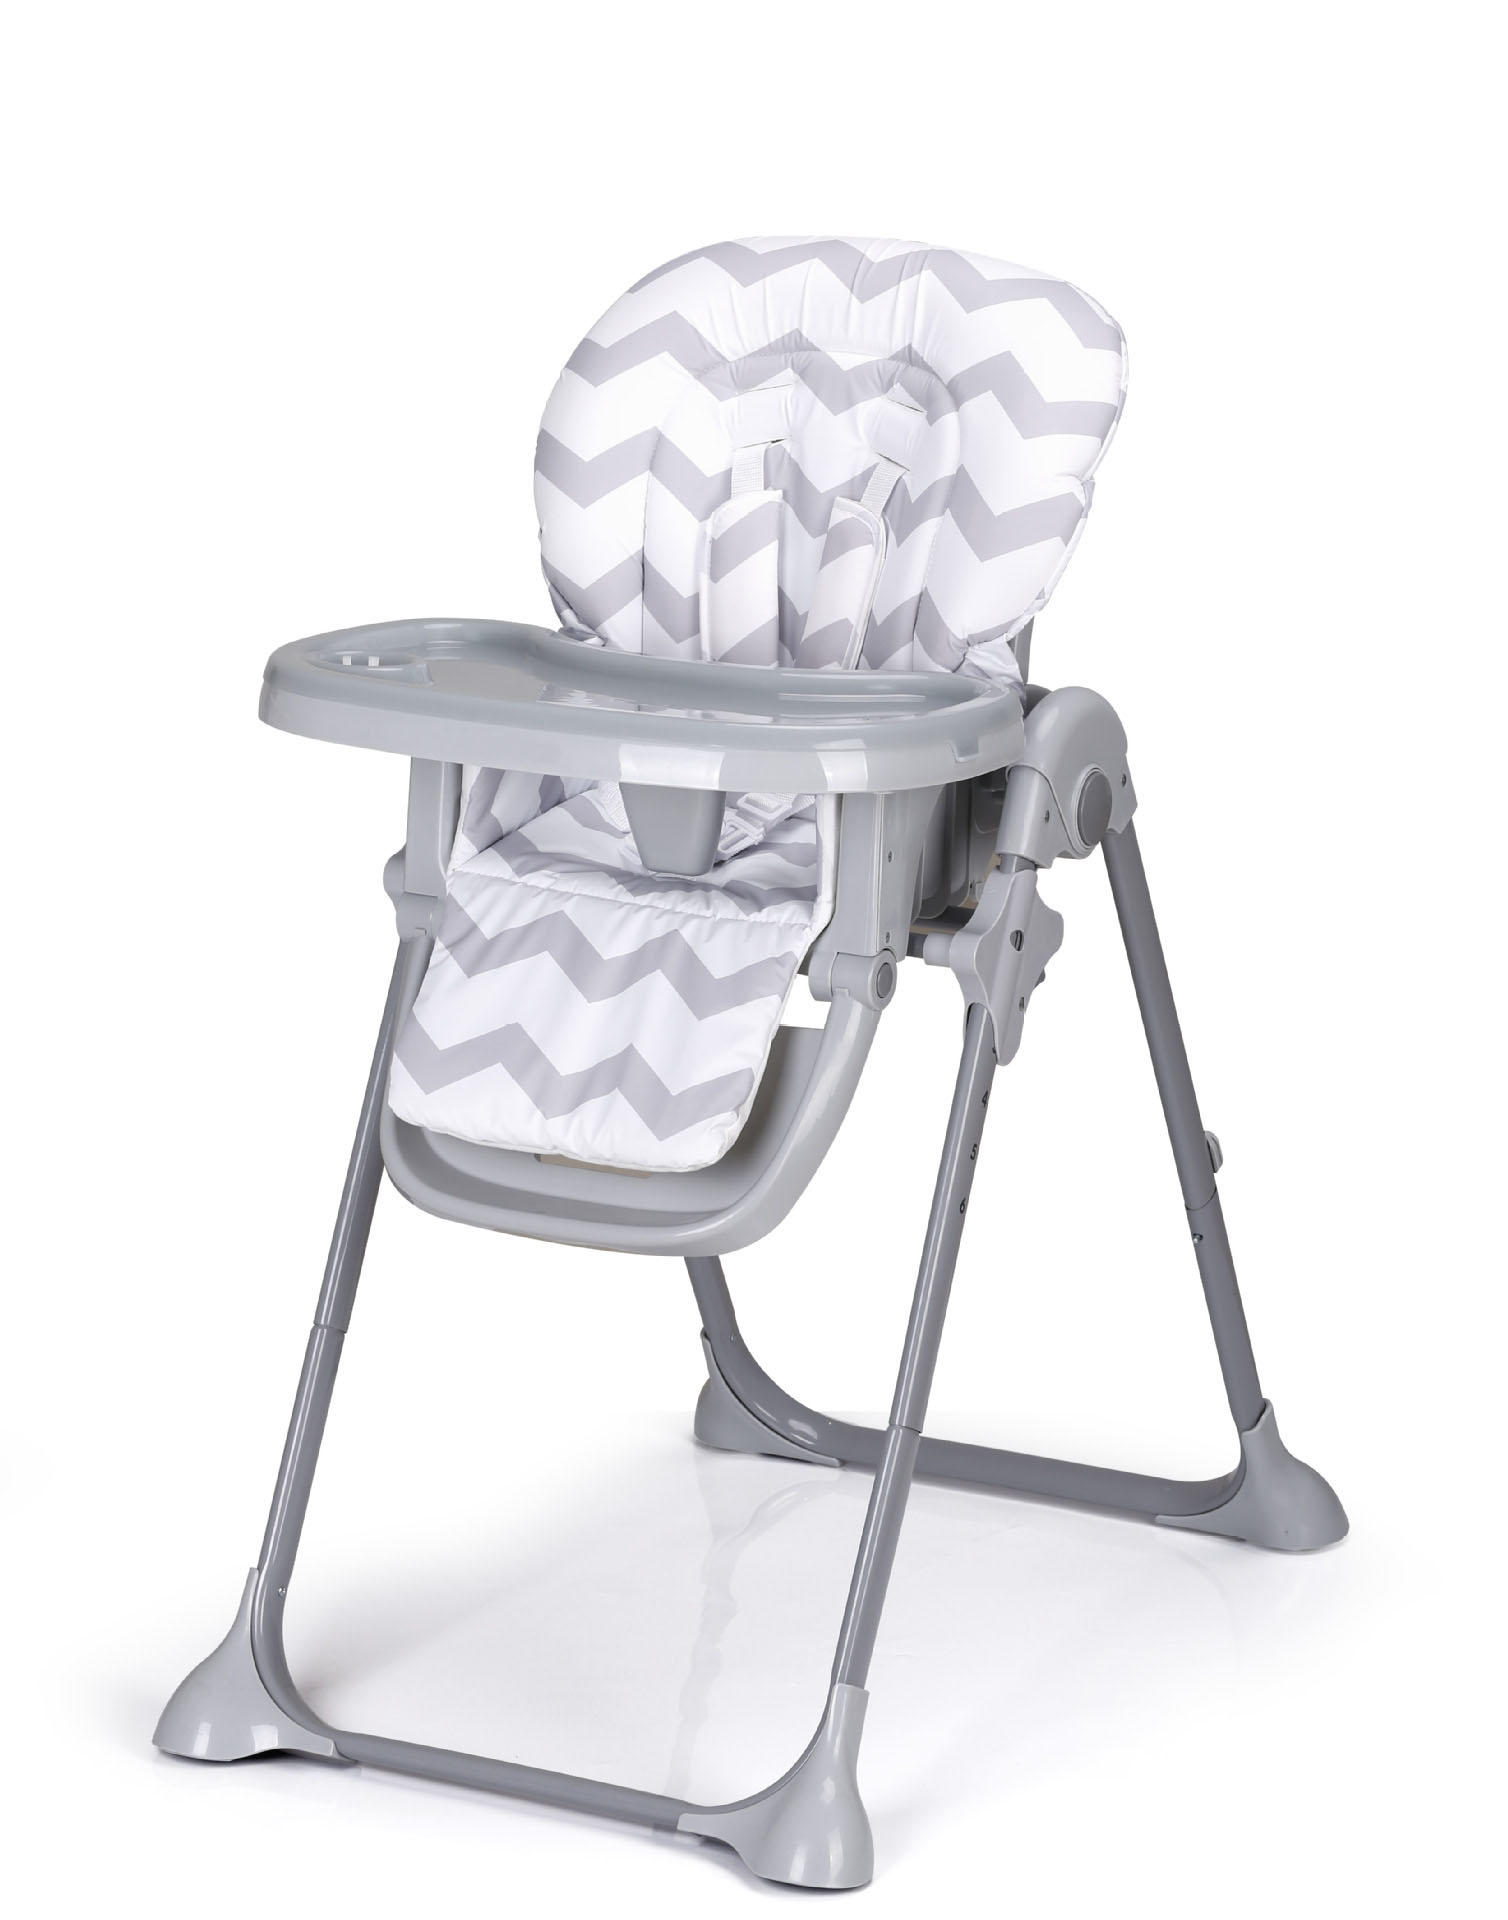 Harari portable high seat chairs for babies Suppliers for older baby-2